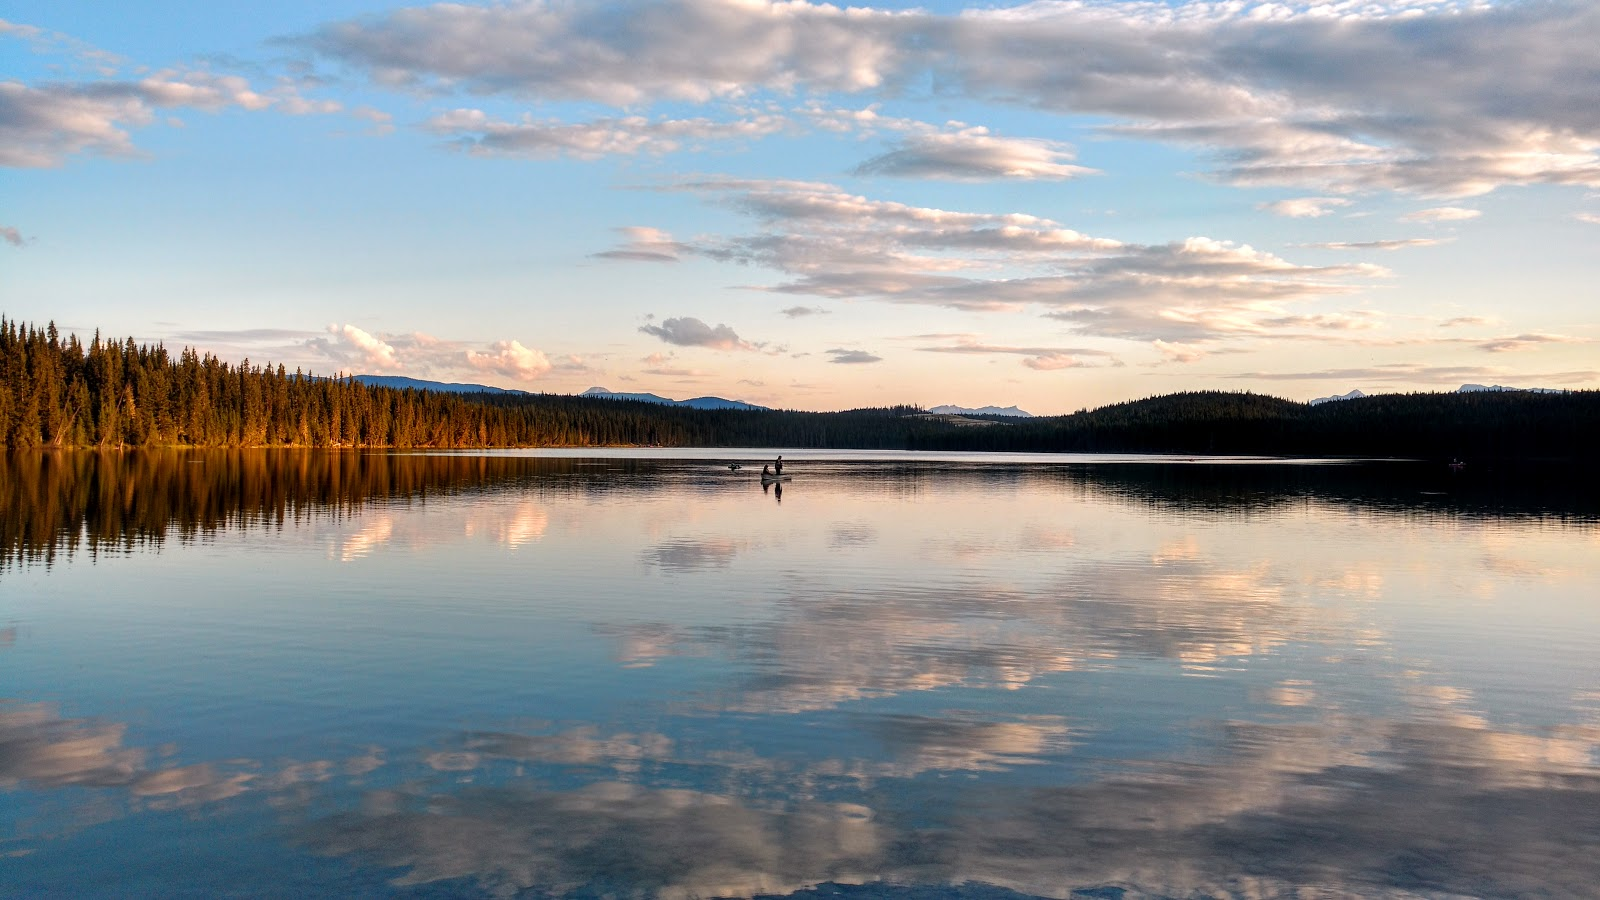 Camping and hiking in david thompson country nordegg area for Fish lake camping